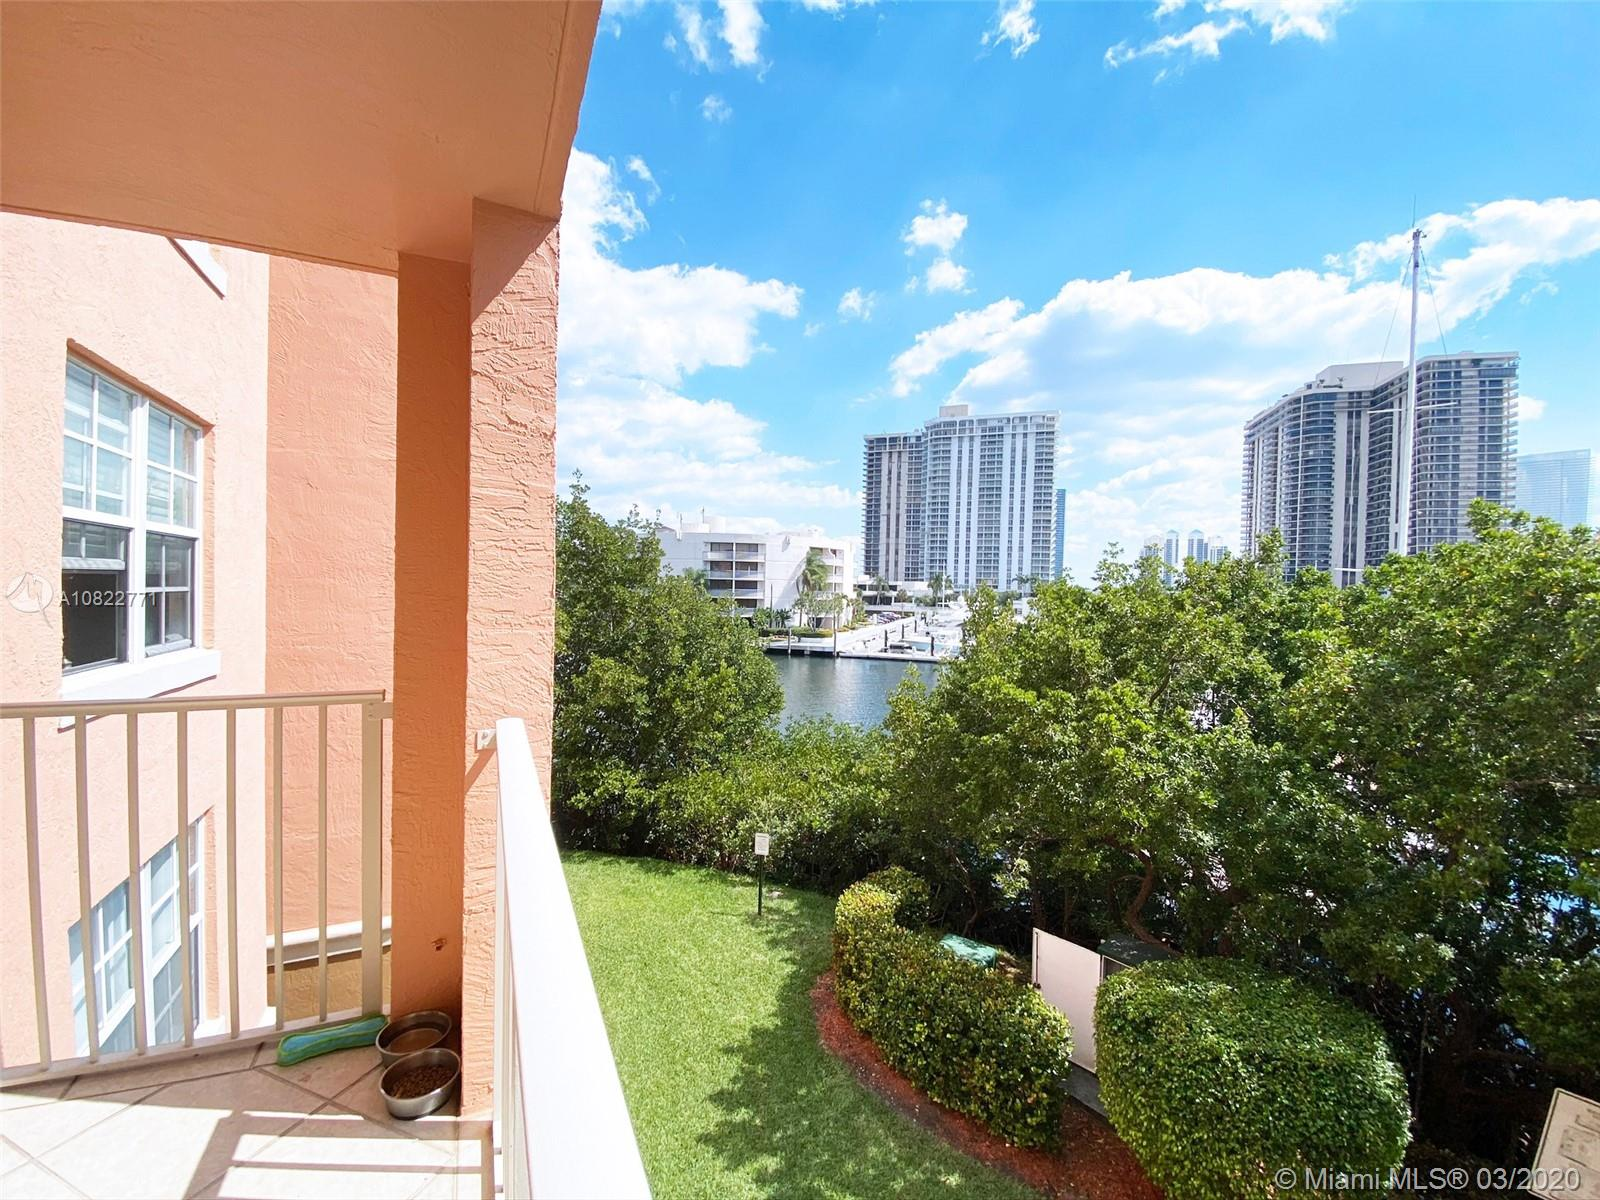 Yacht Club 9 at Aventura #1307 - 19999 E Country Club Dr #1307, Aventura, FL 33180